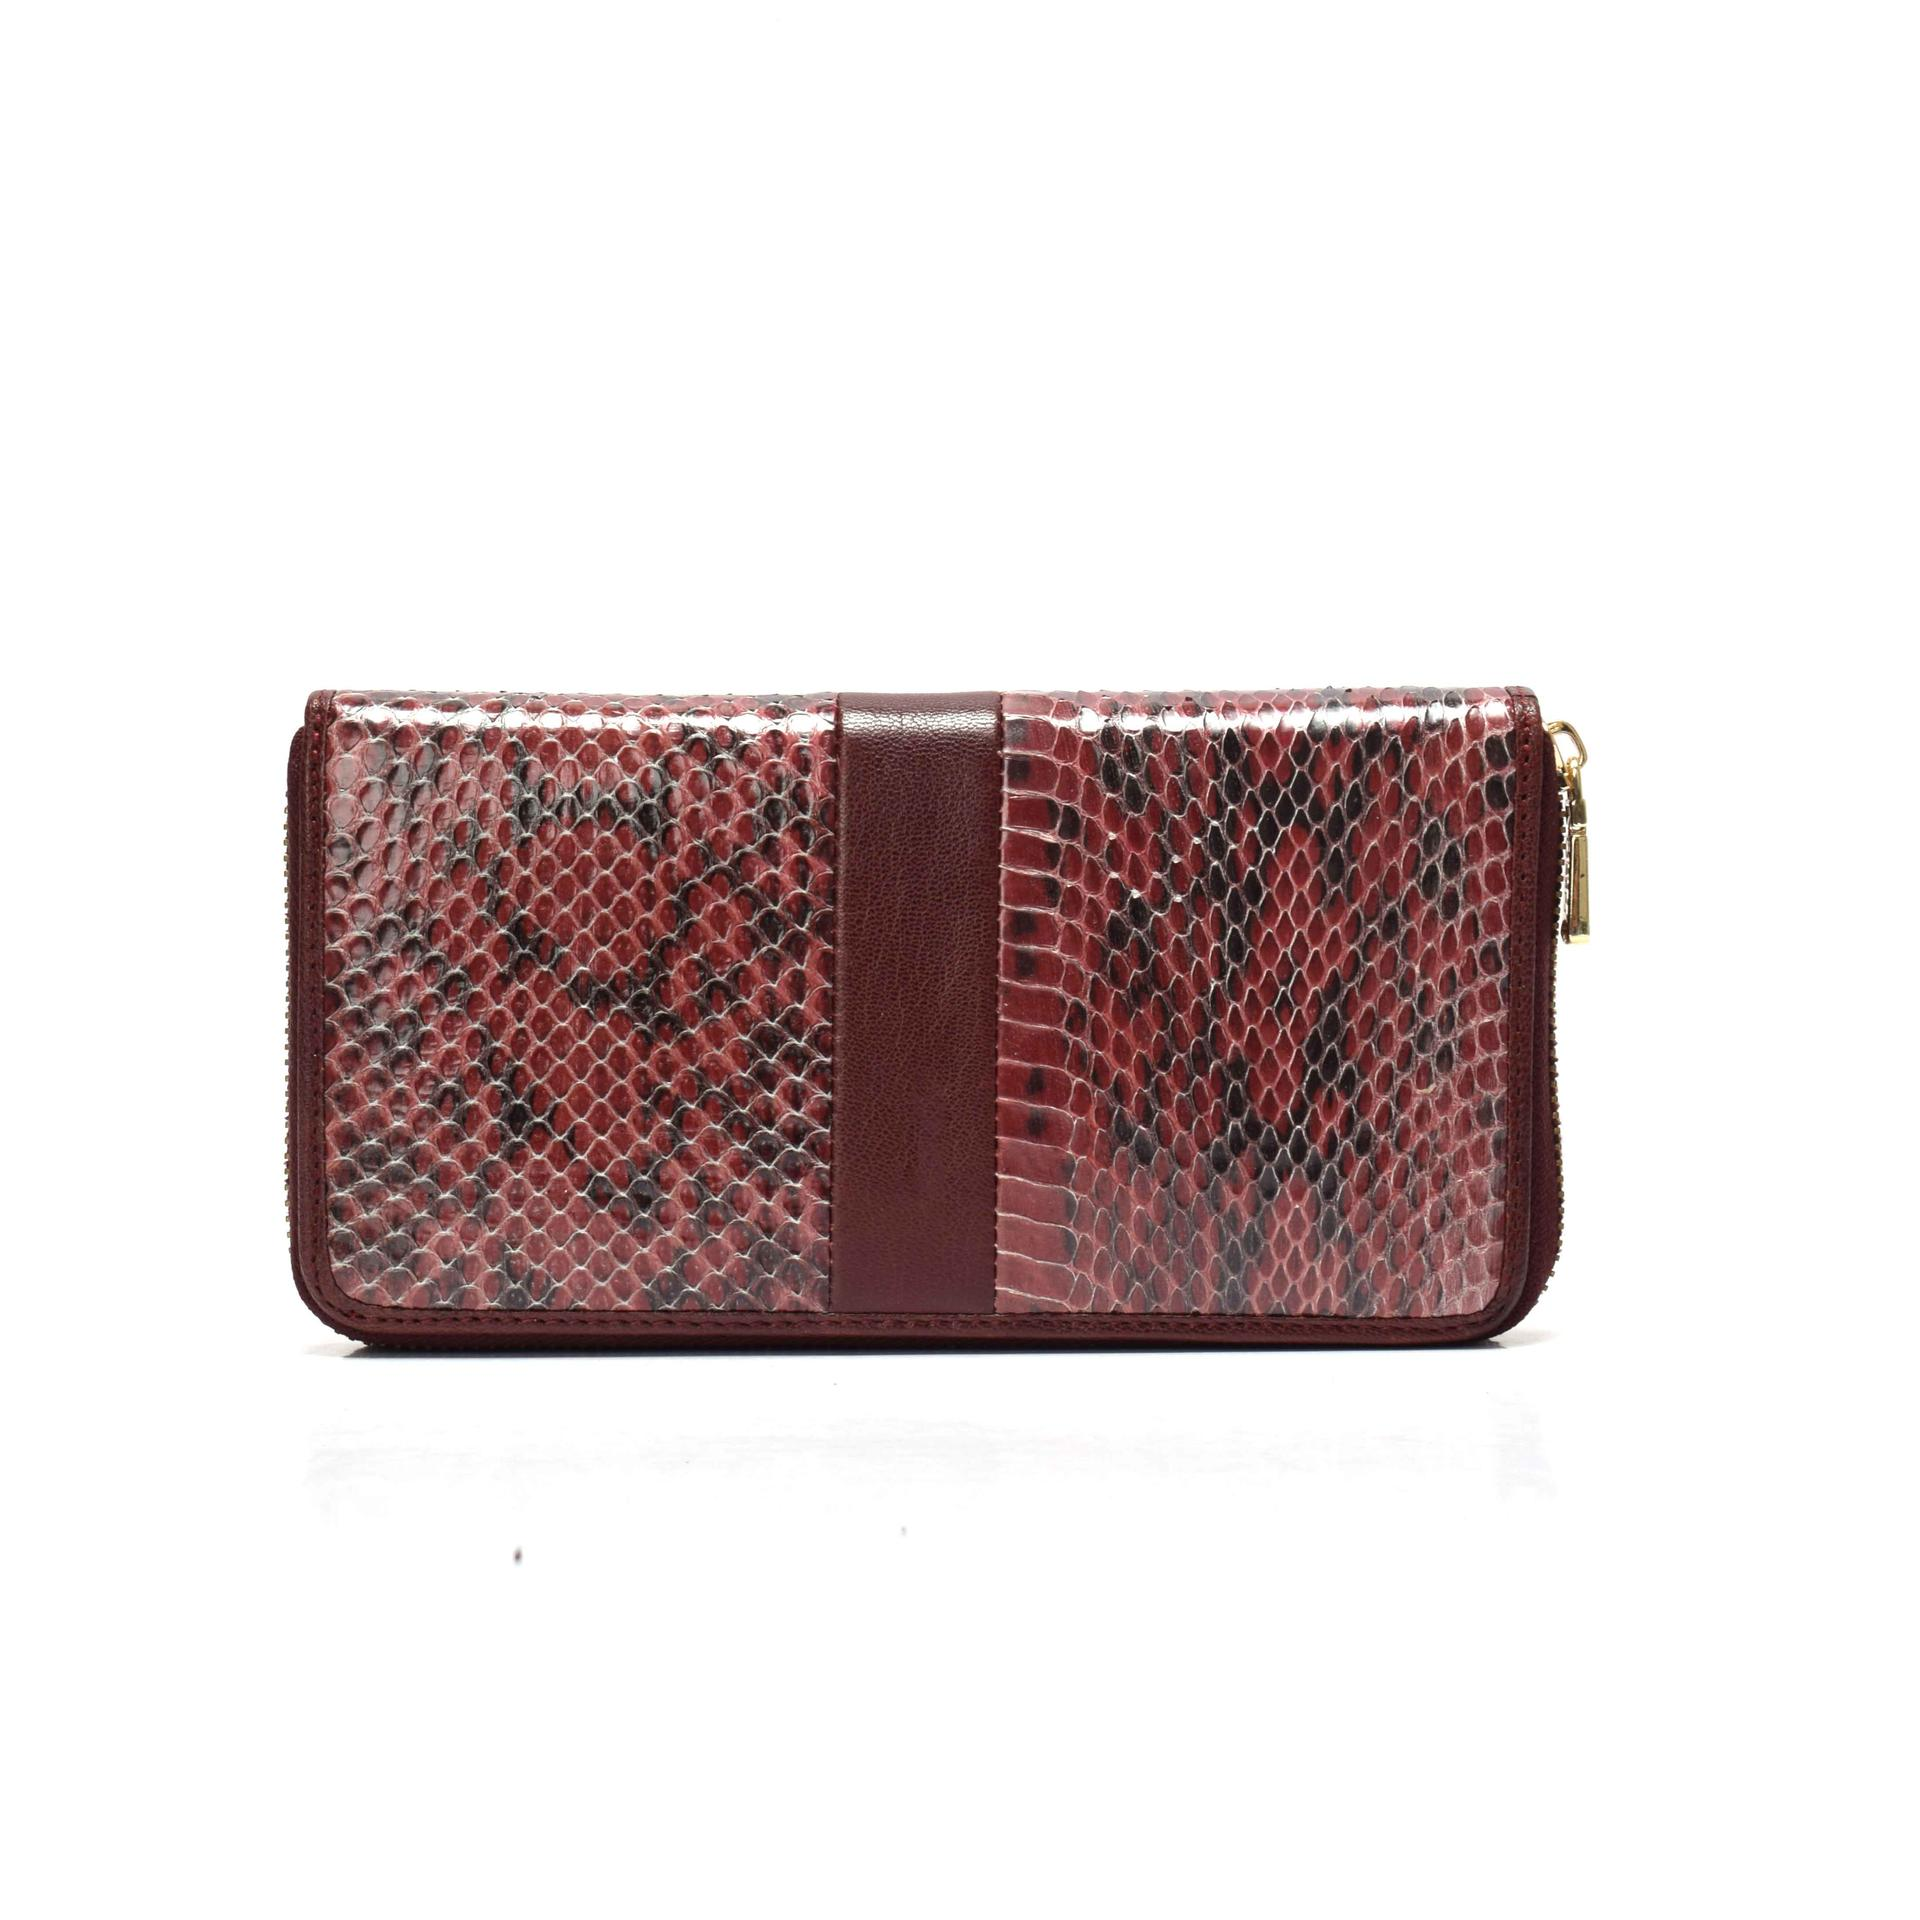 Zip wallet for women ladies wallet python wallet in leather  women's leather wallet